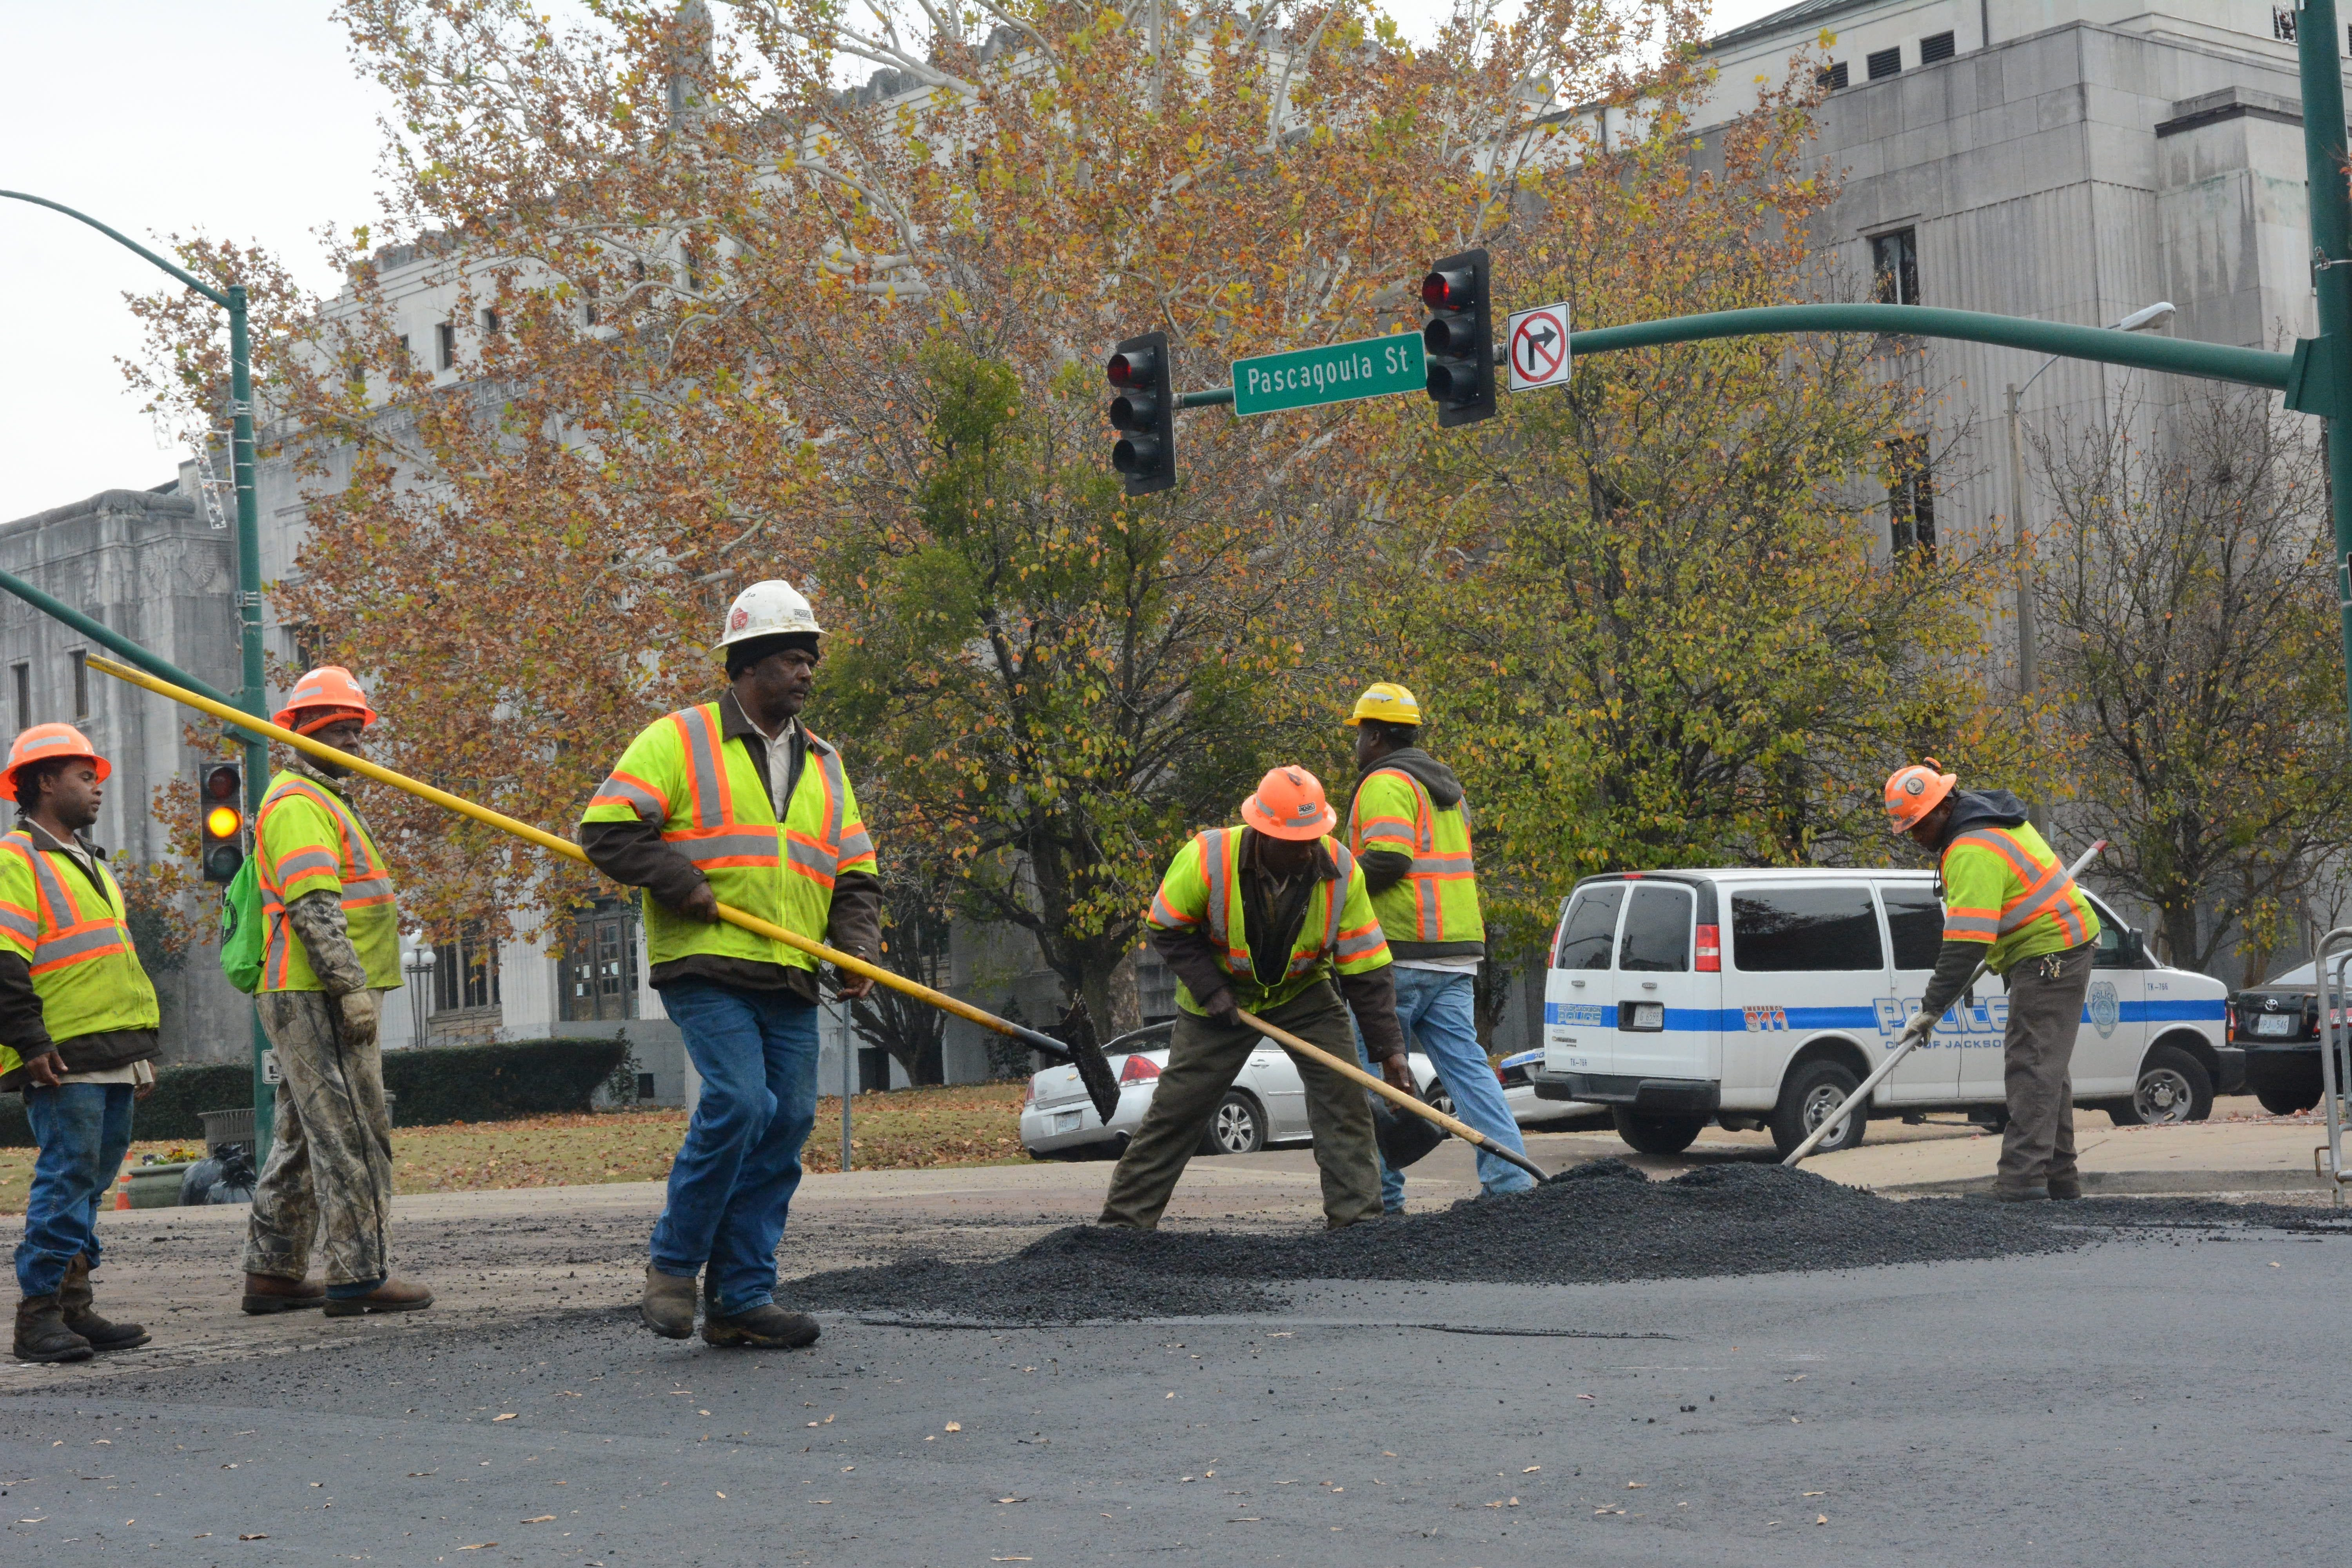 This is not a drill: Jackson moving forward on multiple road repaving projects | Clarion Ledger